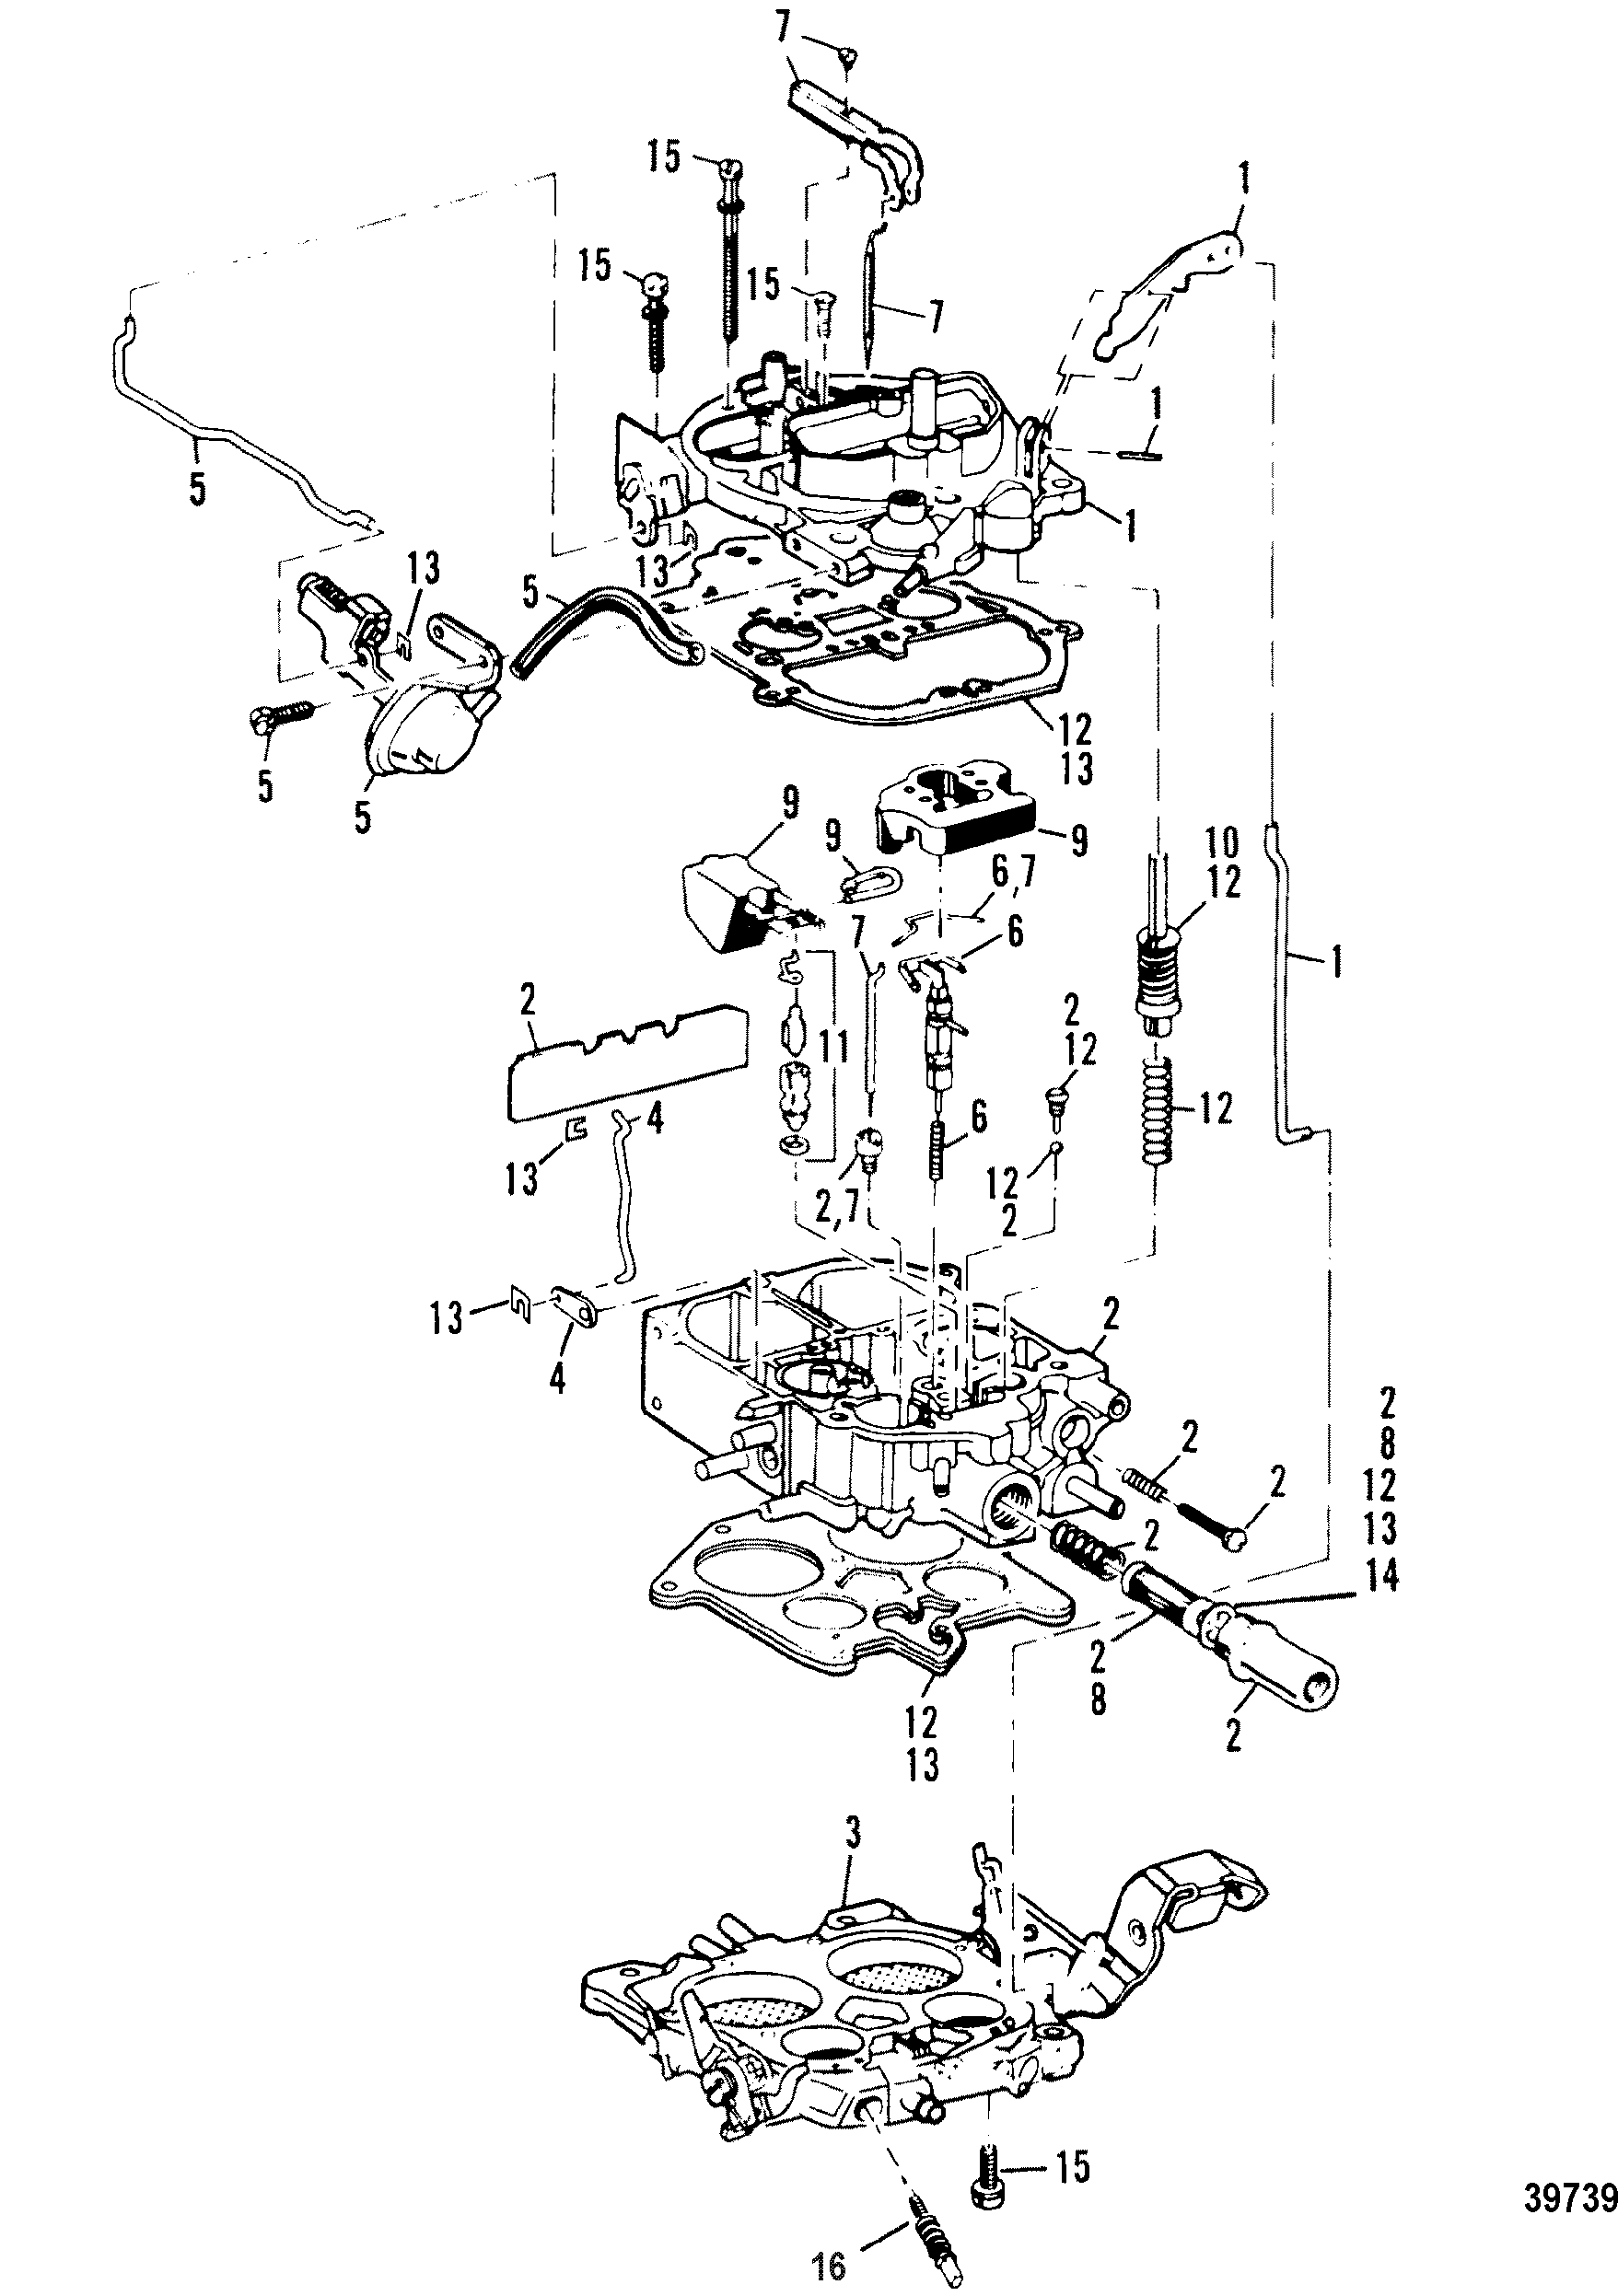 CARBURETOR FOR MERCRUISER 7.4L BRAVO